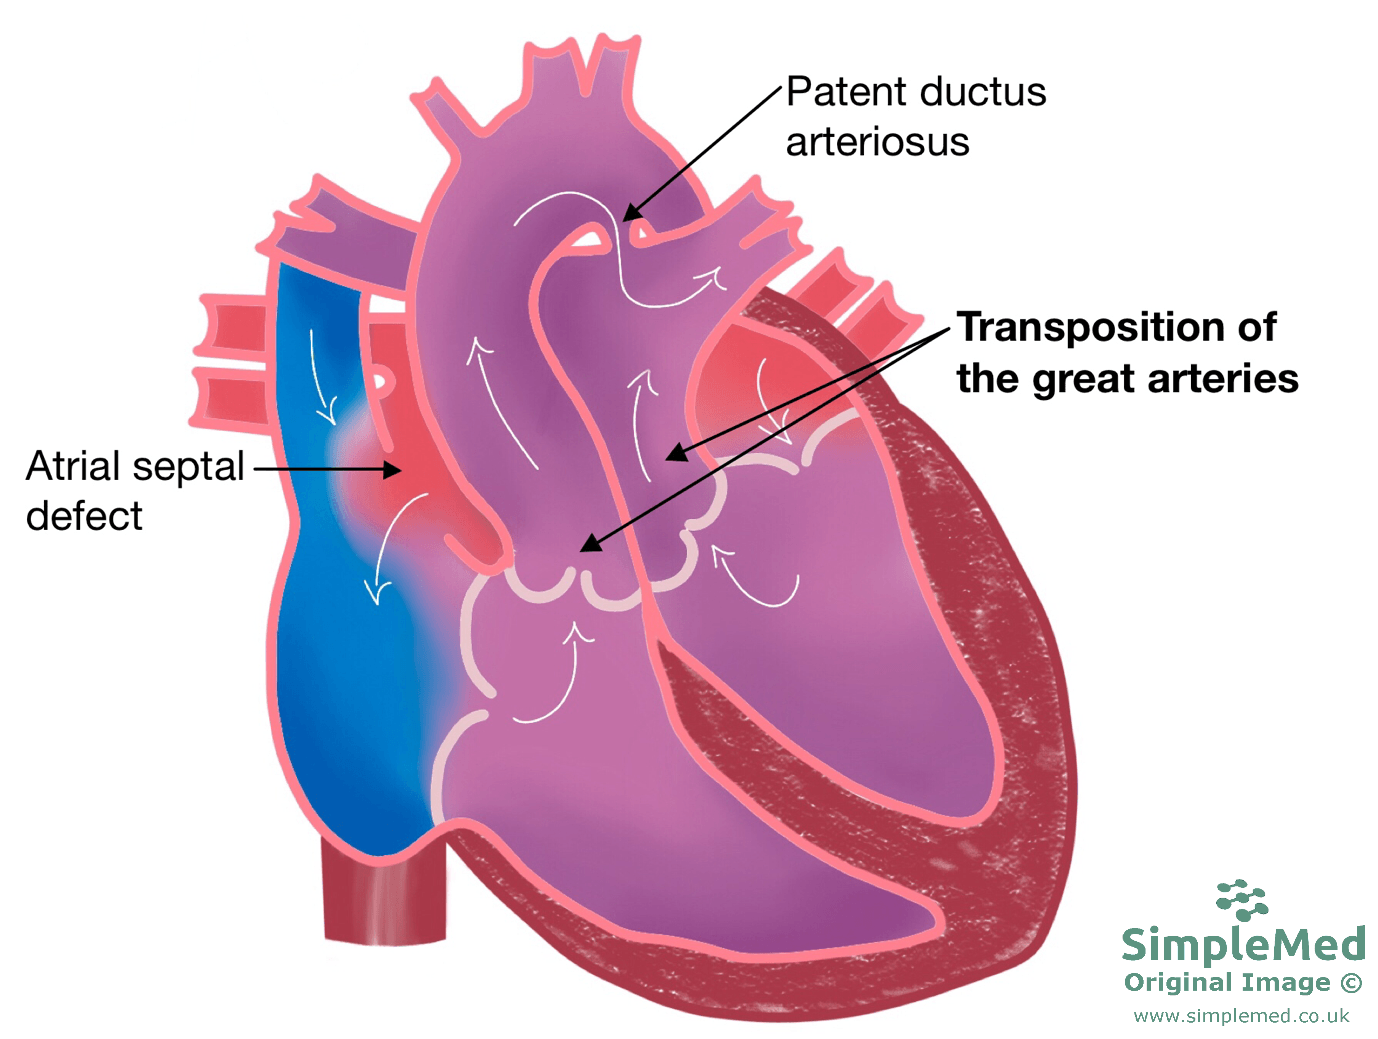 Transposition of the Great Arteries SimpleMed